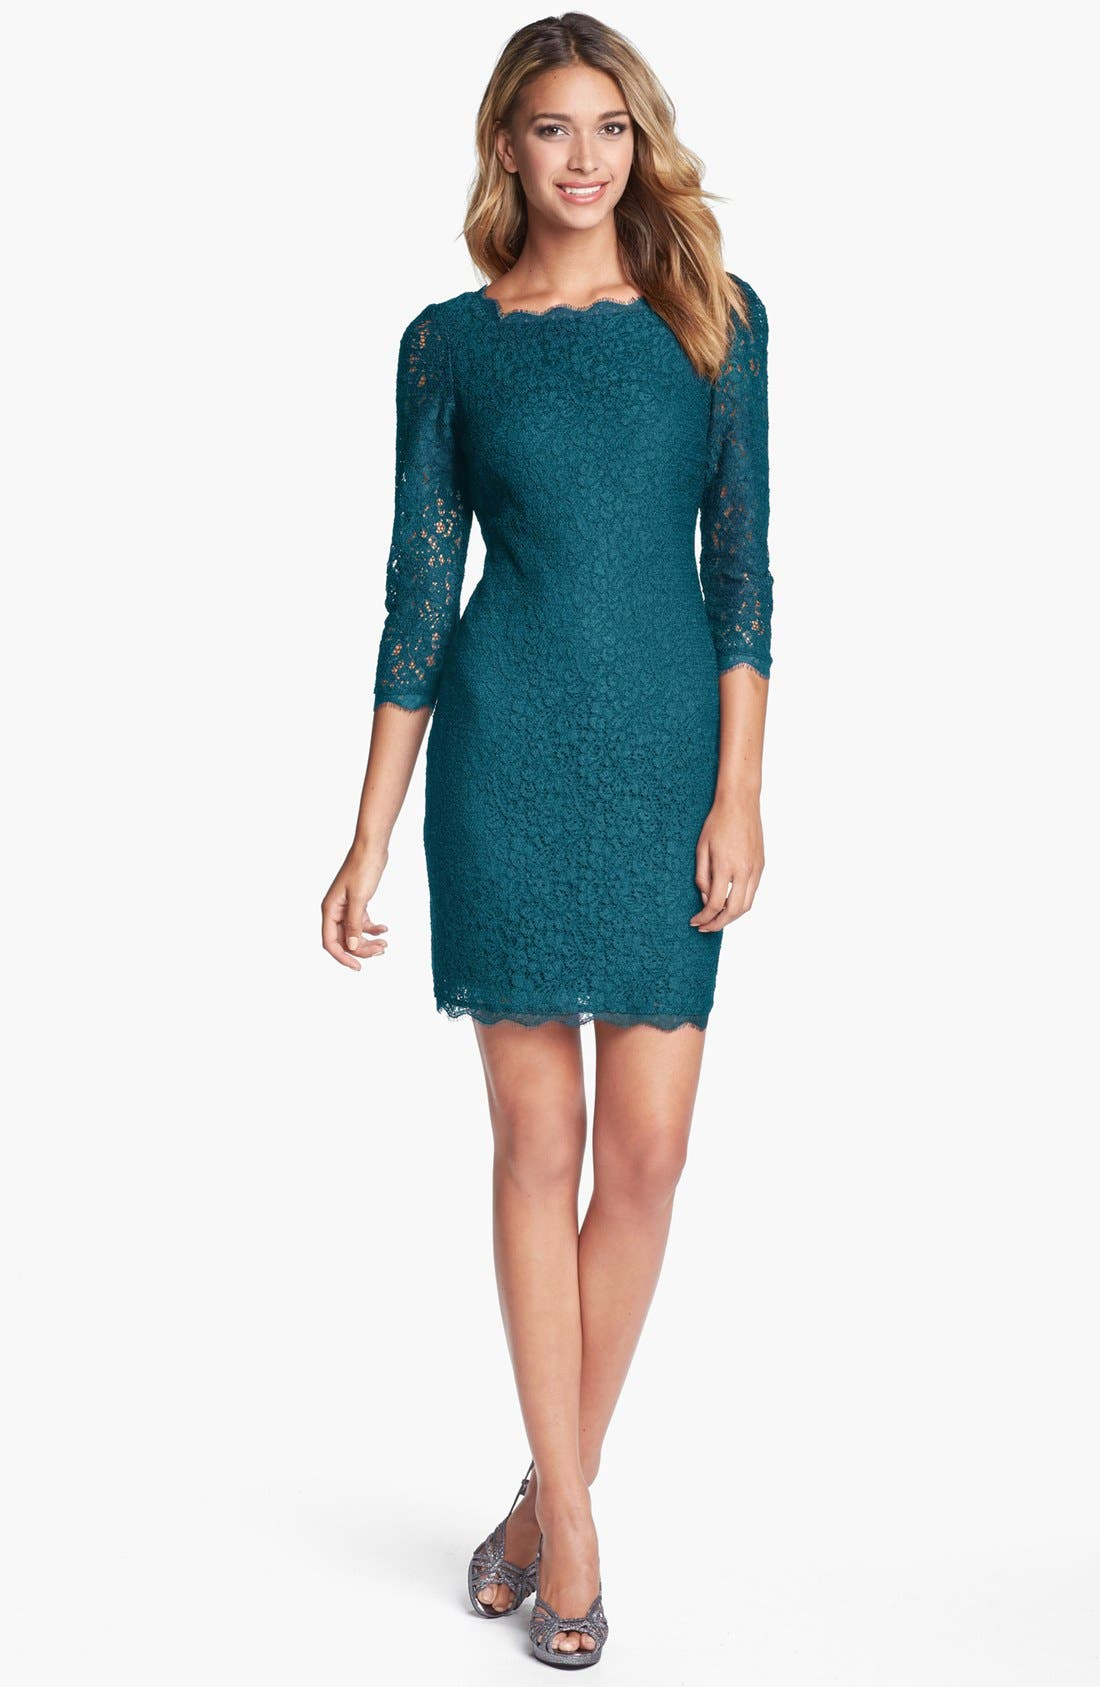 Adrianna Papell Lace Overlay Sheath Dress Regular Petite